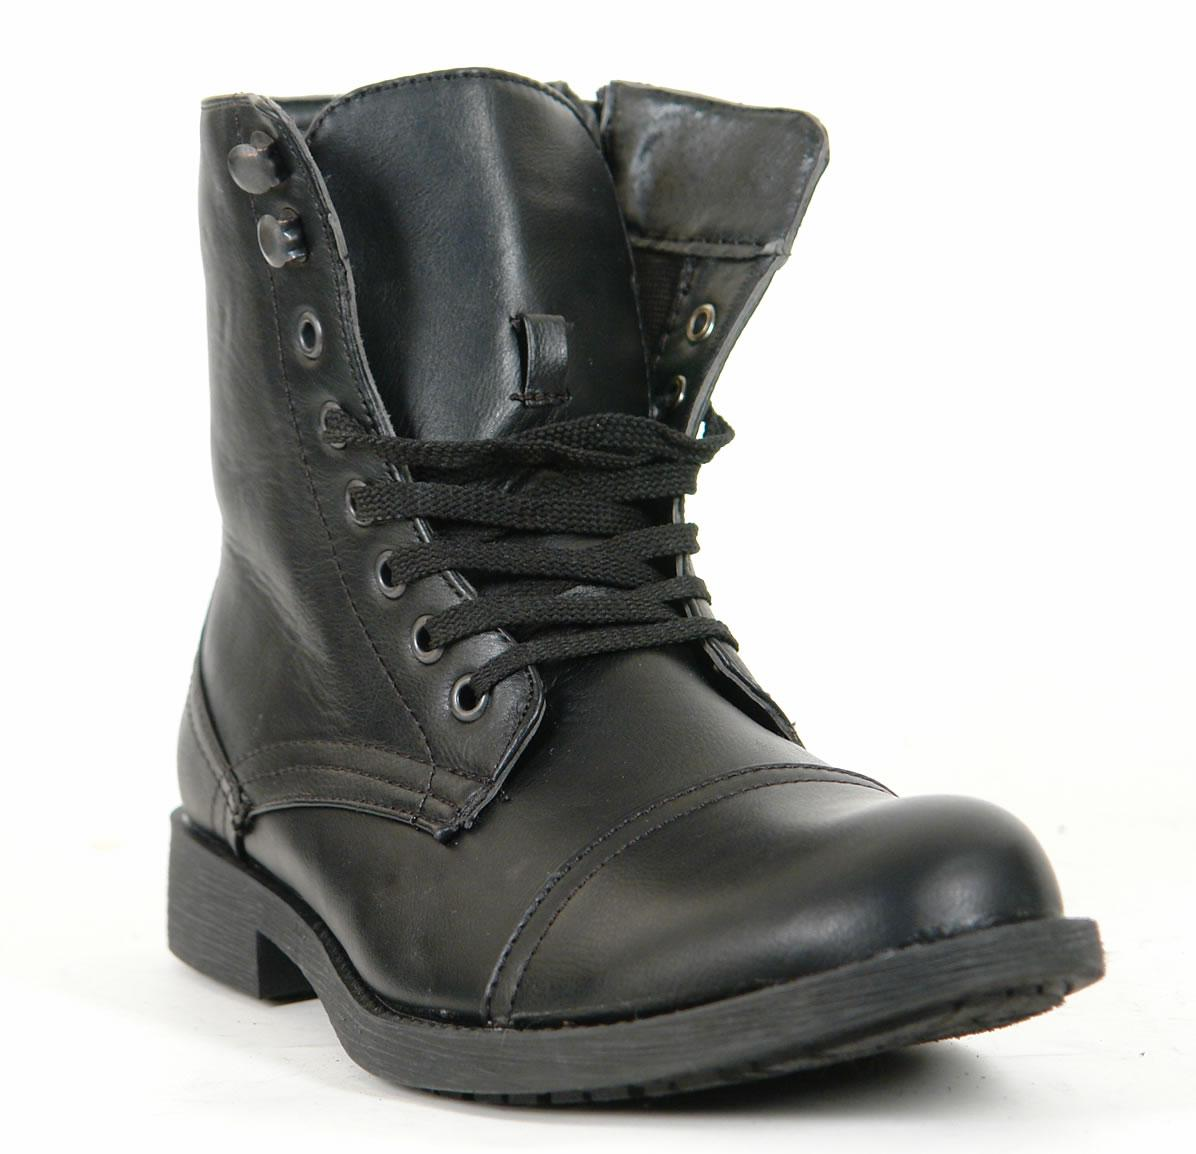 Mens Combat Military Style Boots Images Hosted At